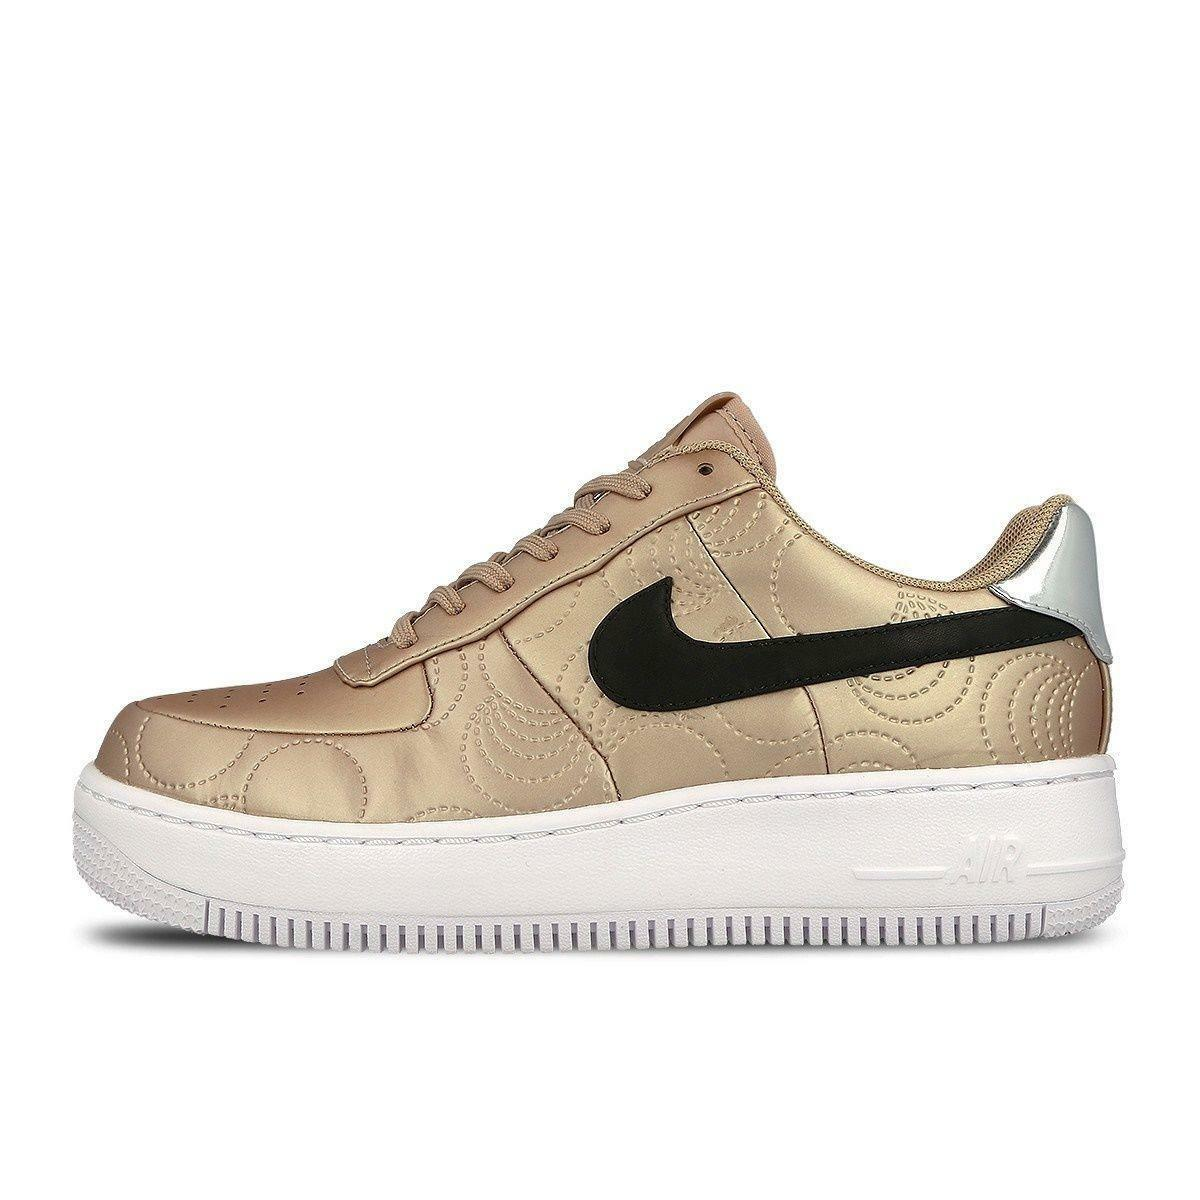 Femme NIKE AF1 UPSTEP Gold LOTC QS Gold UPSTEP Synthetic Trainers 874141900 2967bc